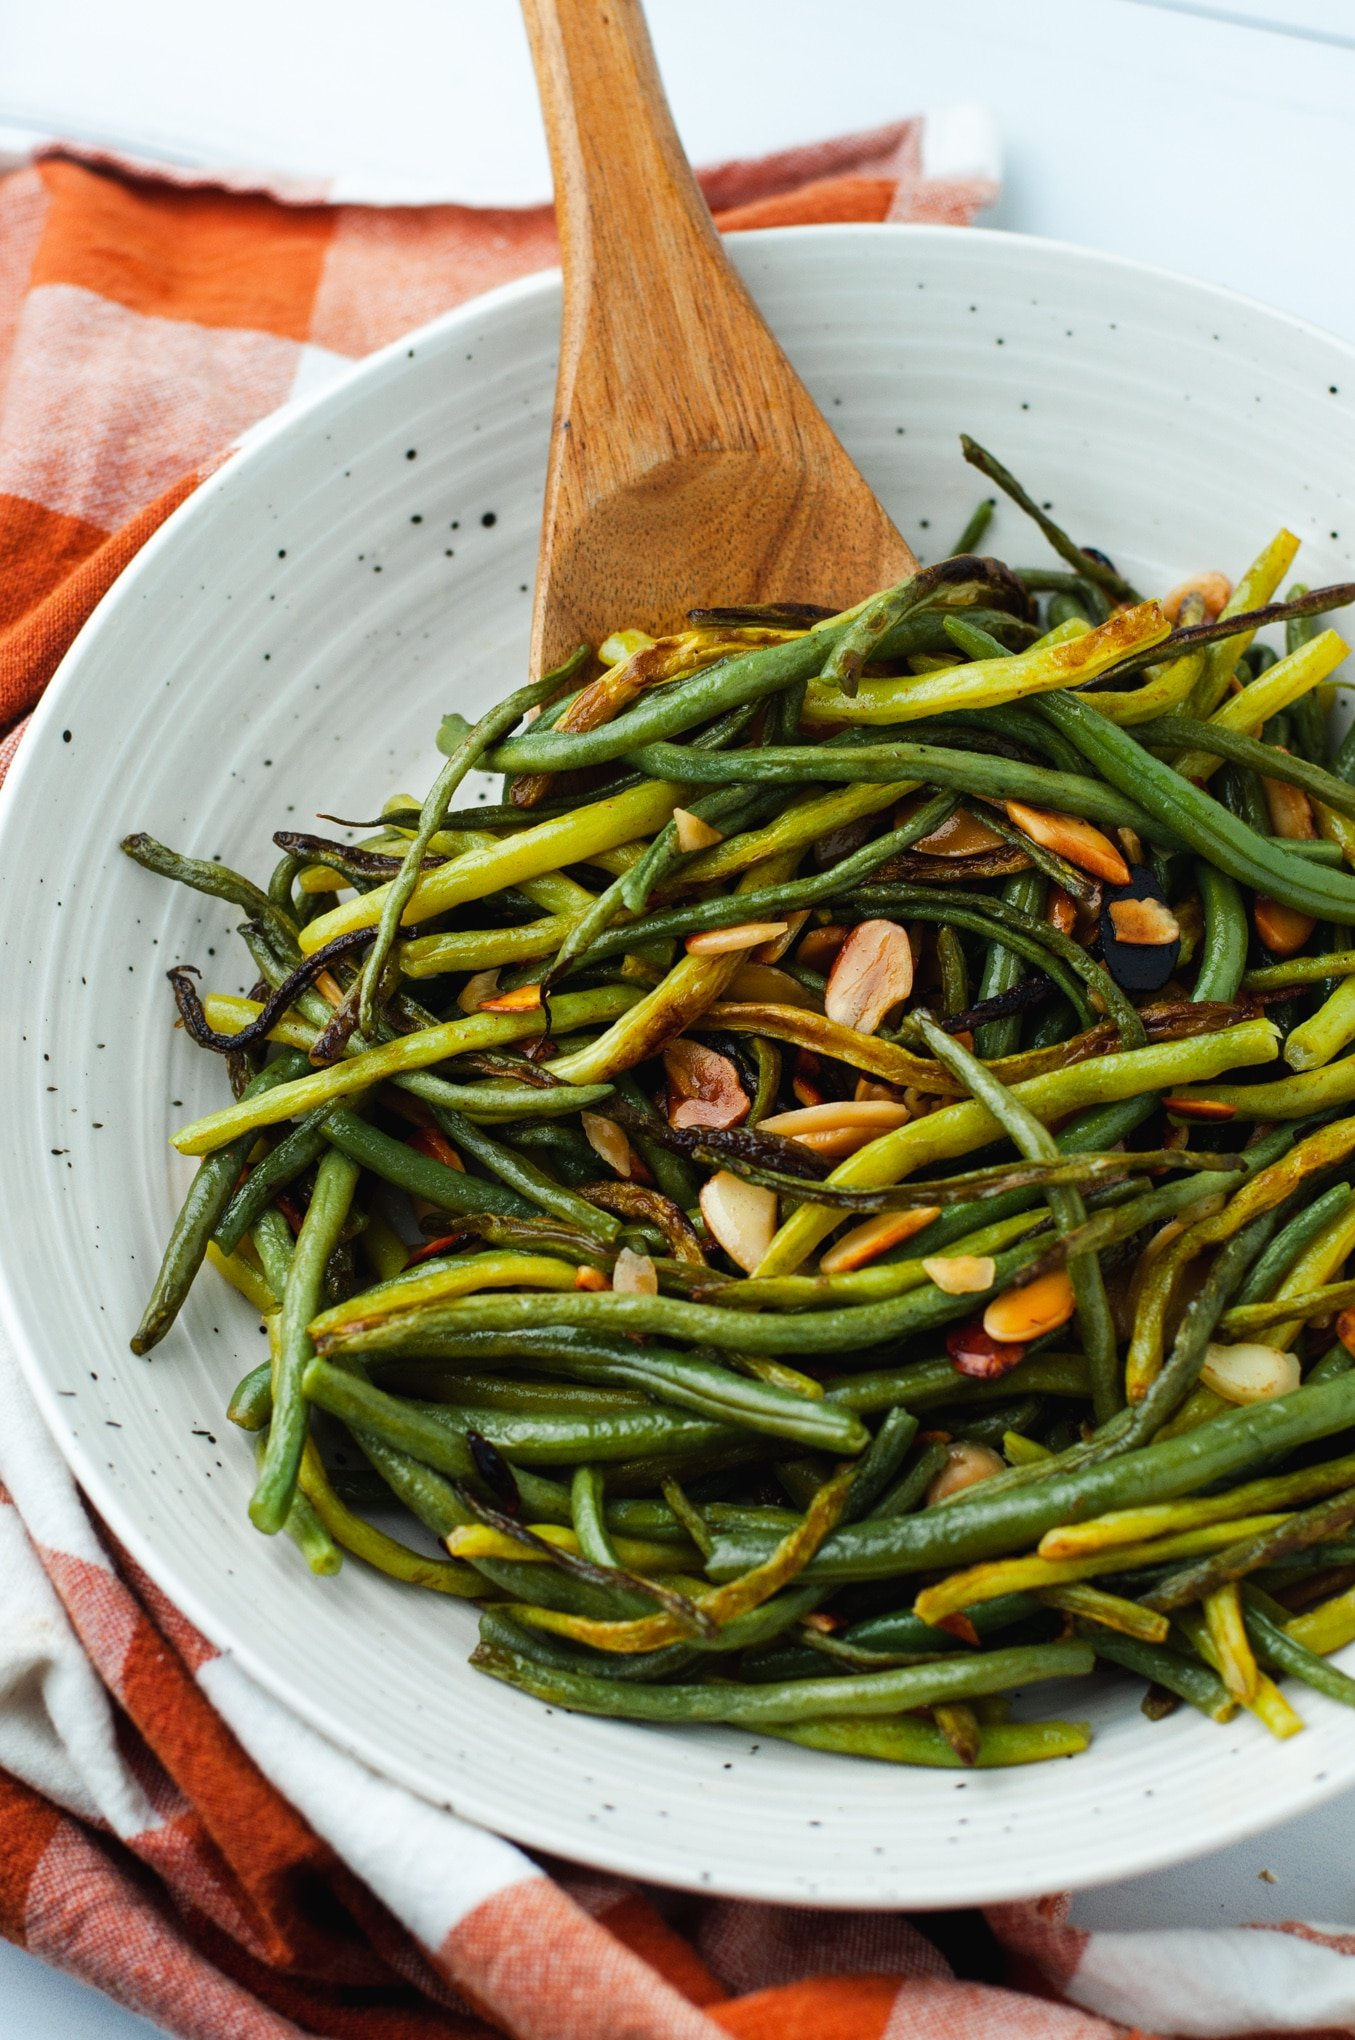 Green beans almondine in a white ceramic bowl with a wooden serving spoon